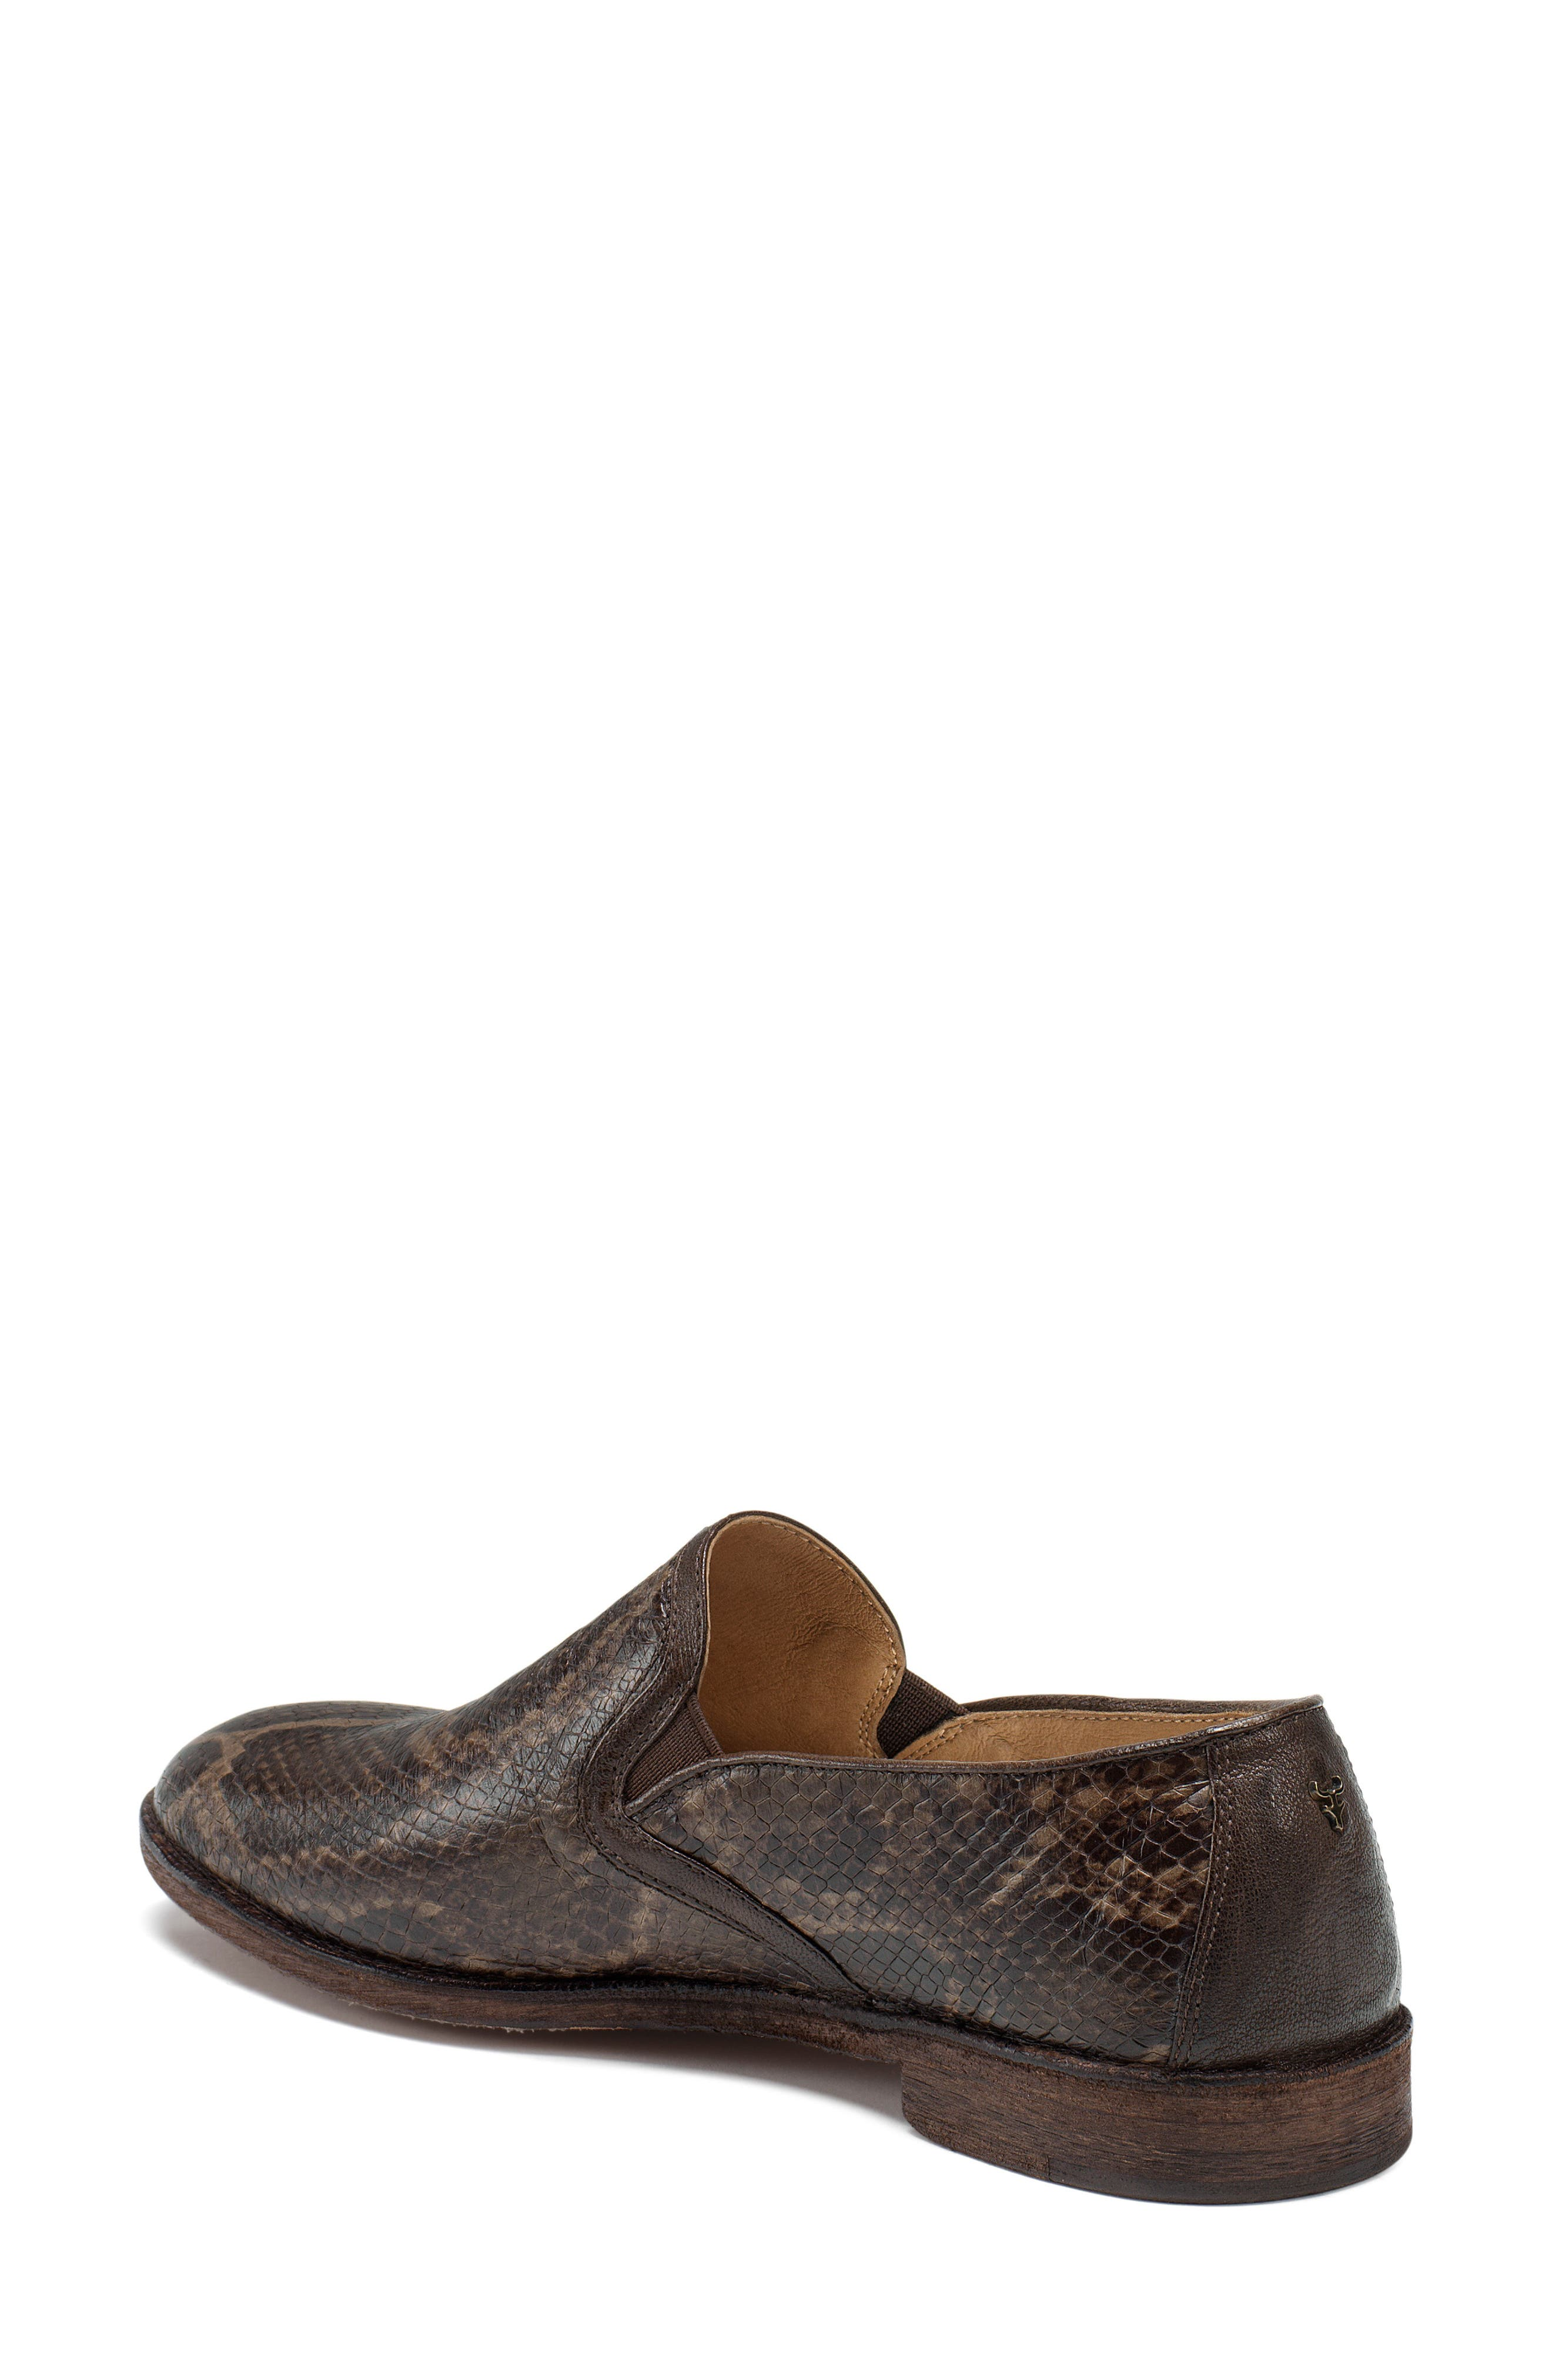 'Ali' Flat,                             Alternate thumbnail 2, color,                             Brown Print Leather